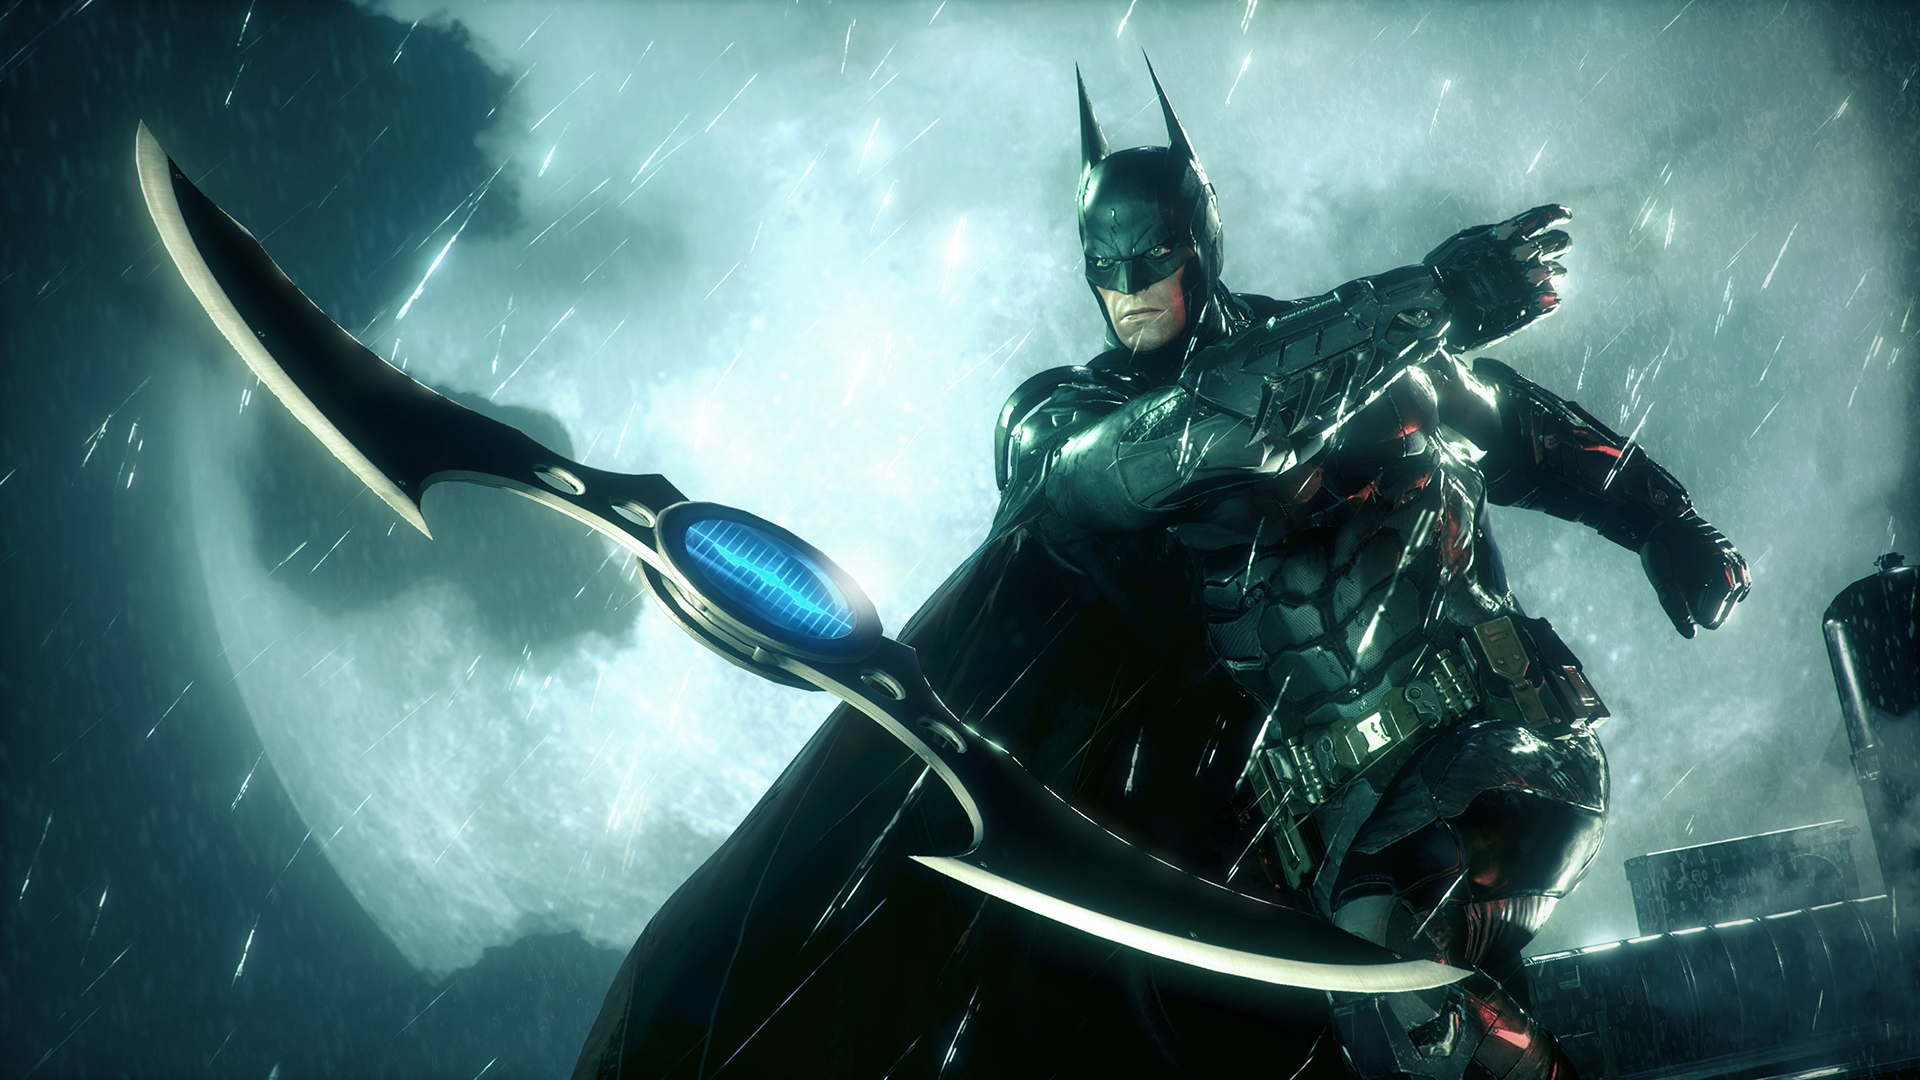 Batman gets PC patch, as Rocksteady takes charge of 'significant' work needed on game